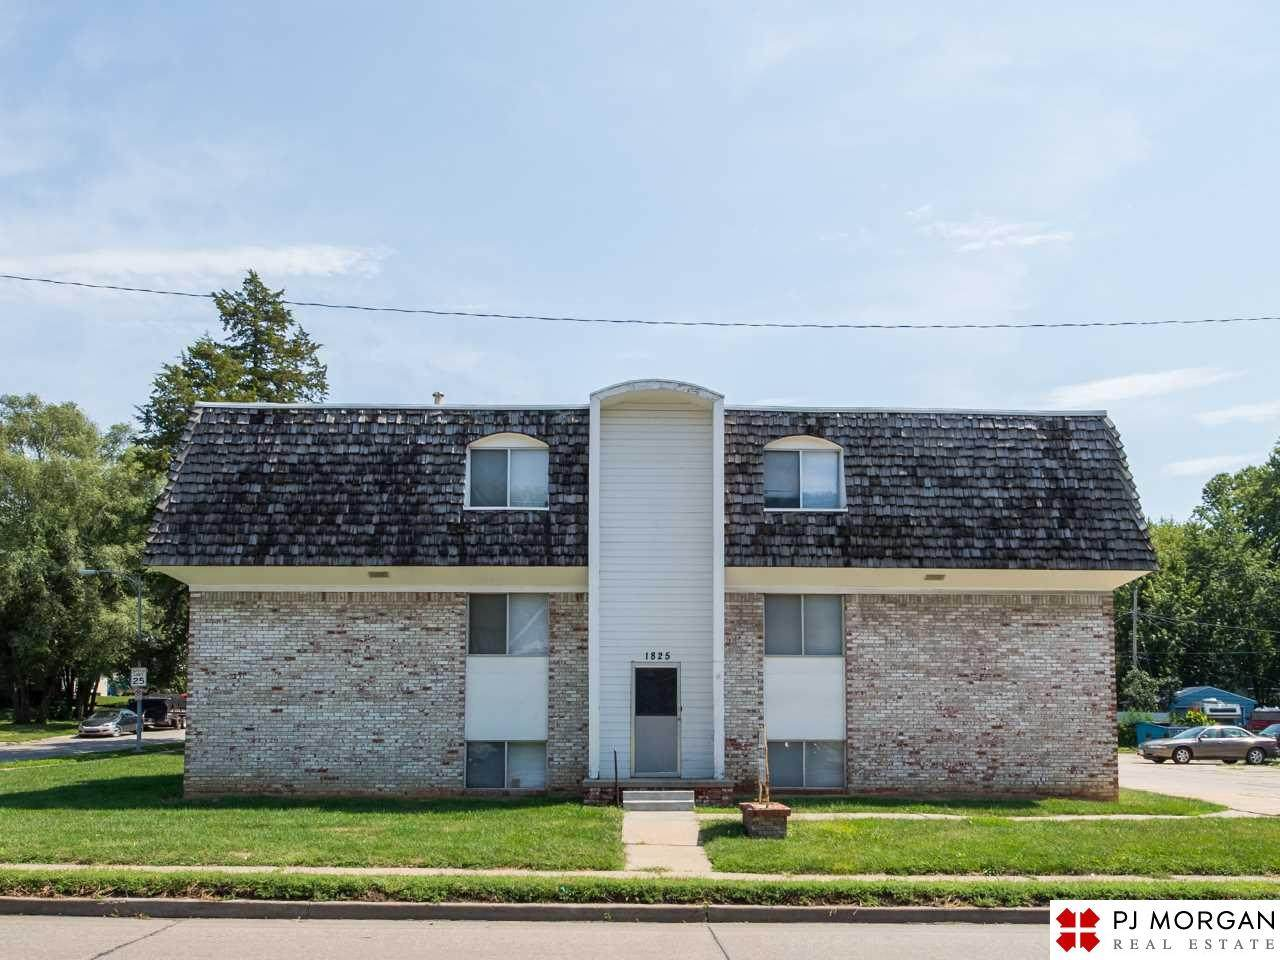 1825 Nw Radial Hwy Radial - Photo 1